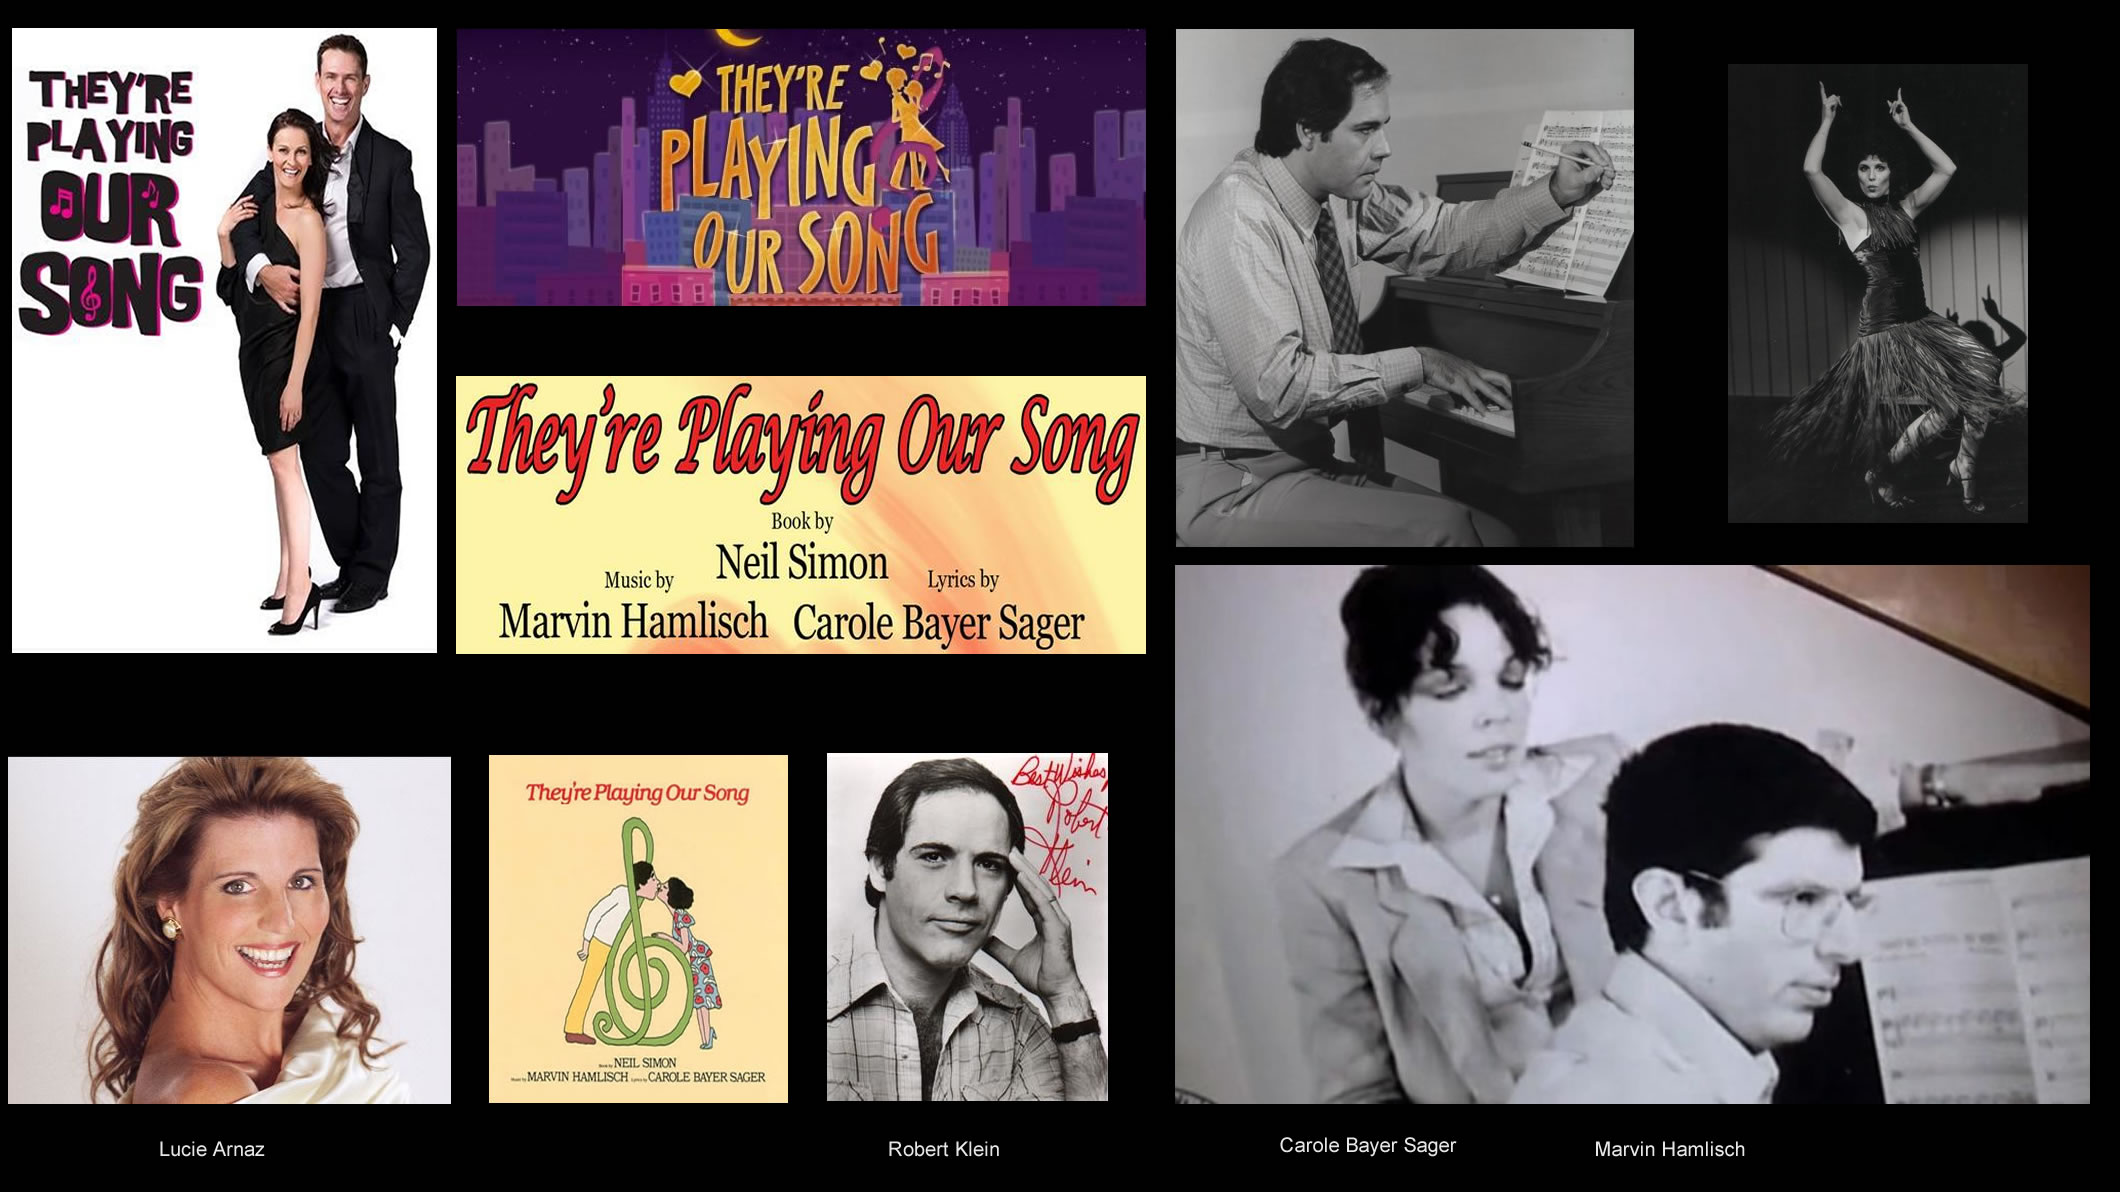 Original Broadway Production performed by Robert Klein & Lucie Arnaz. Book by Neil Simon, Music by Marvin Hamlisch, Lyrics by Carole Bayer Sager.